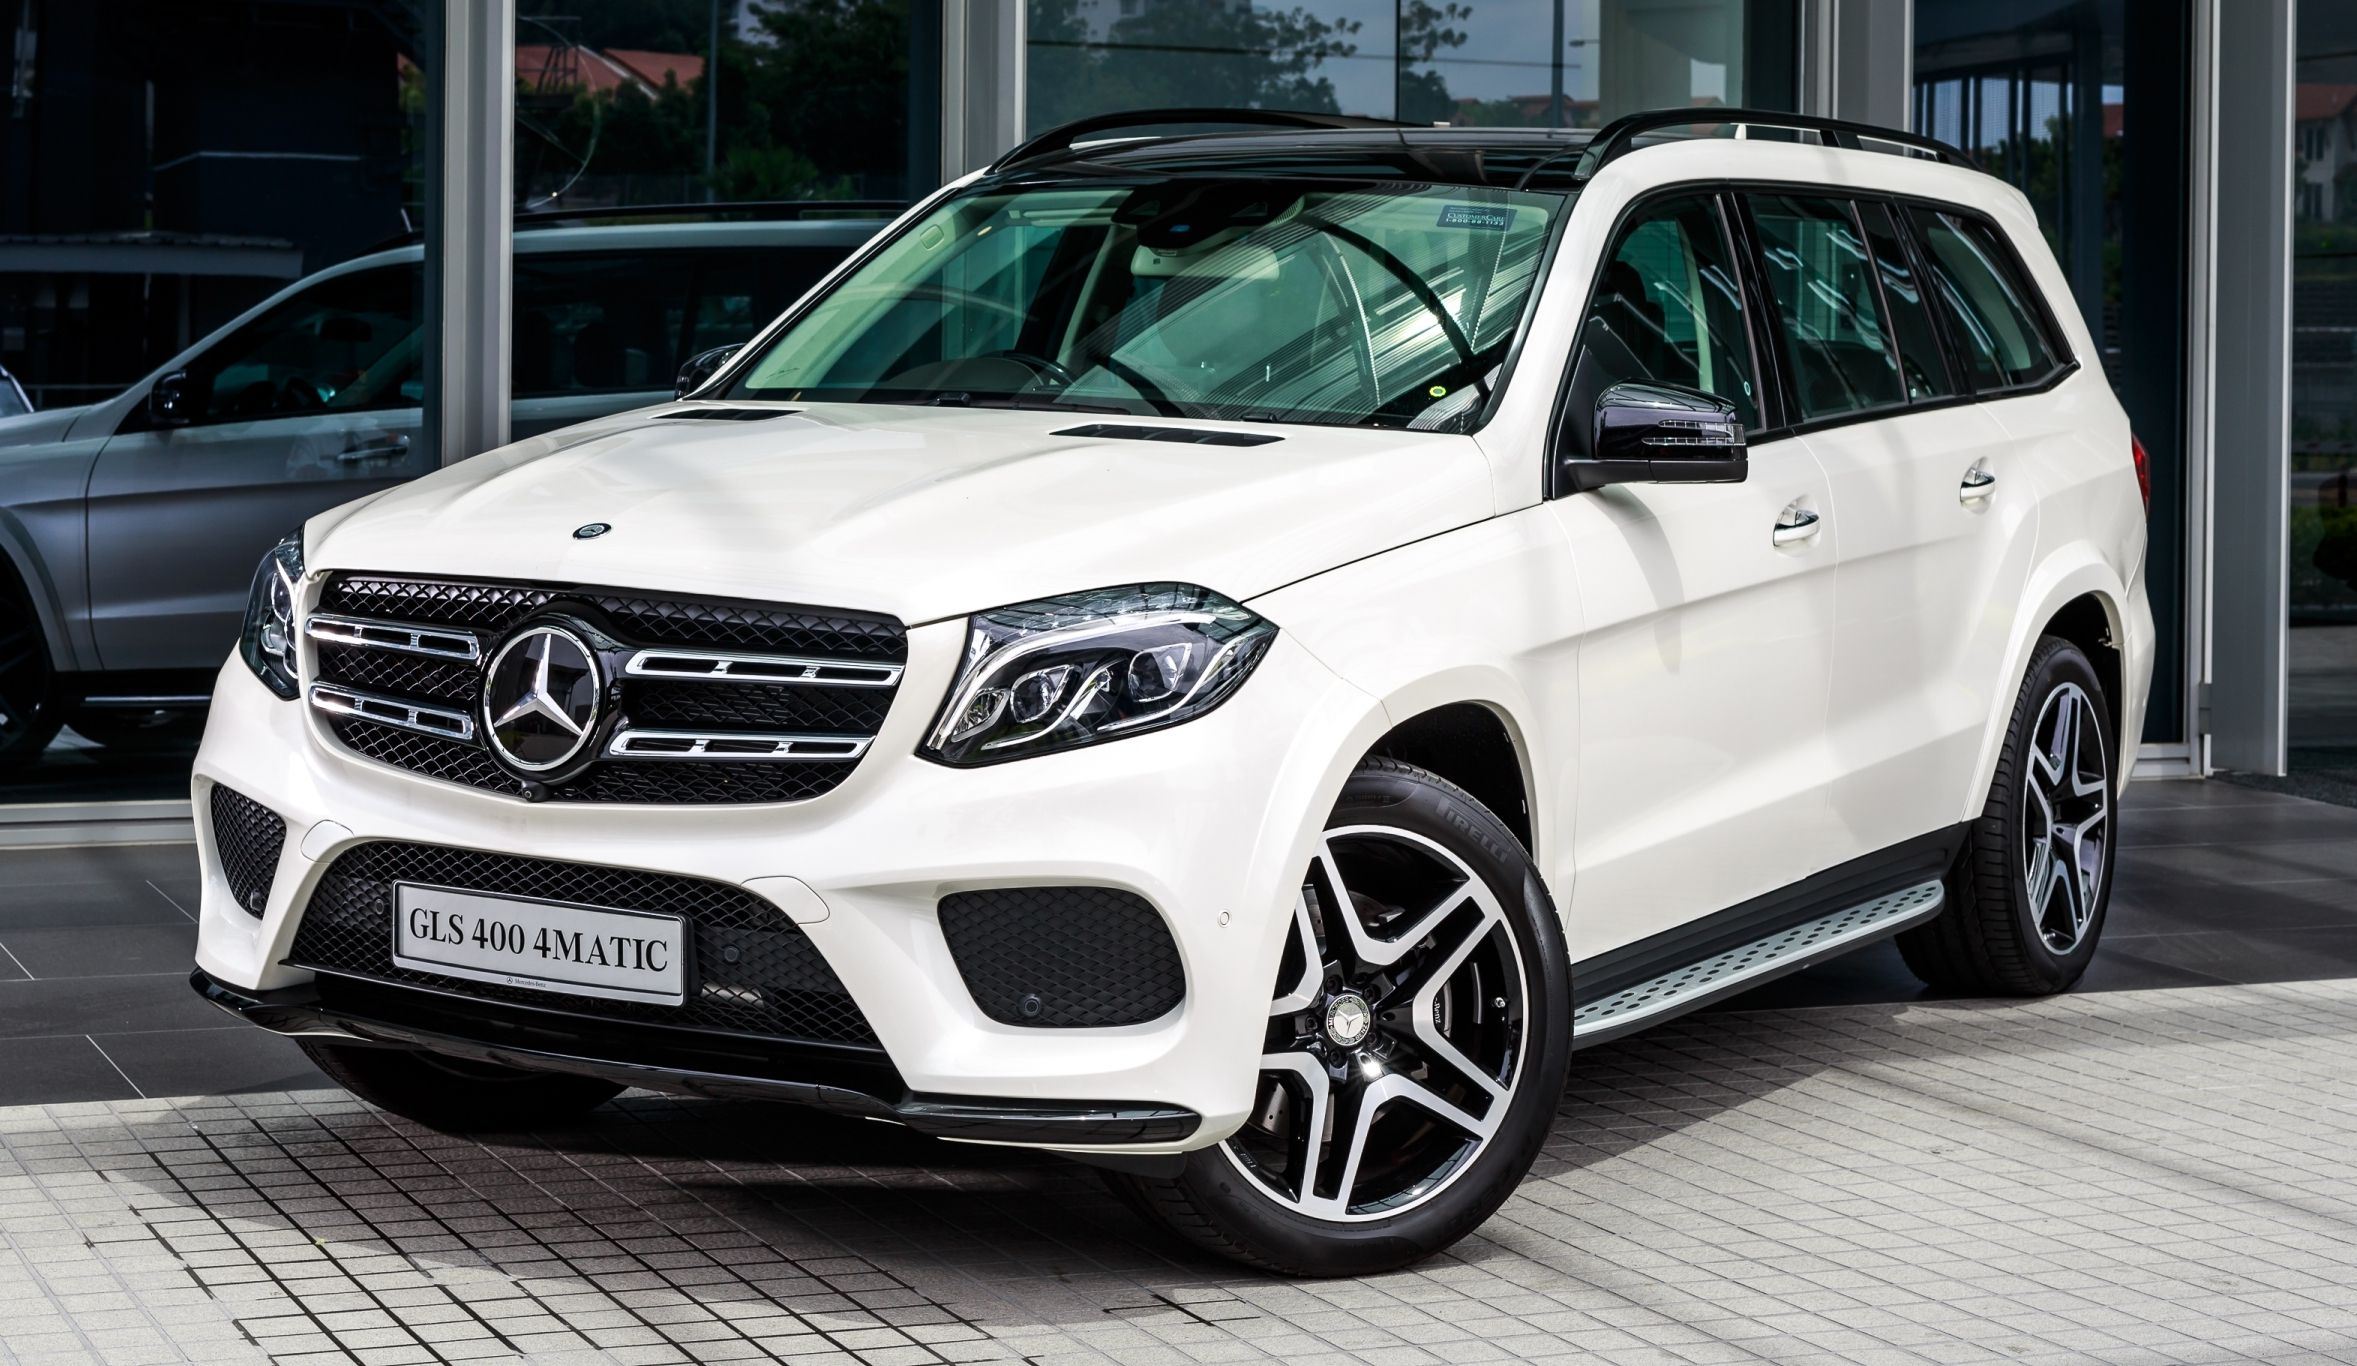 Mercedes Benz Gls 400 4matic Launched Rm889k With Images